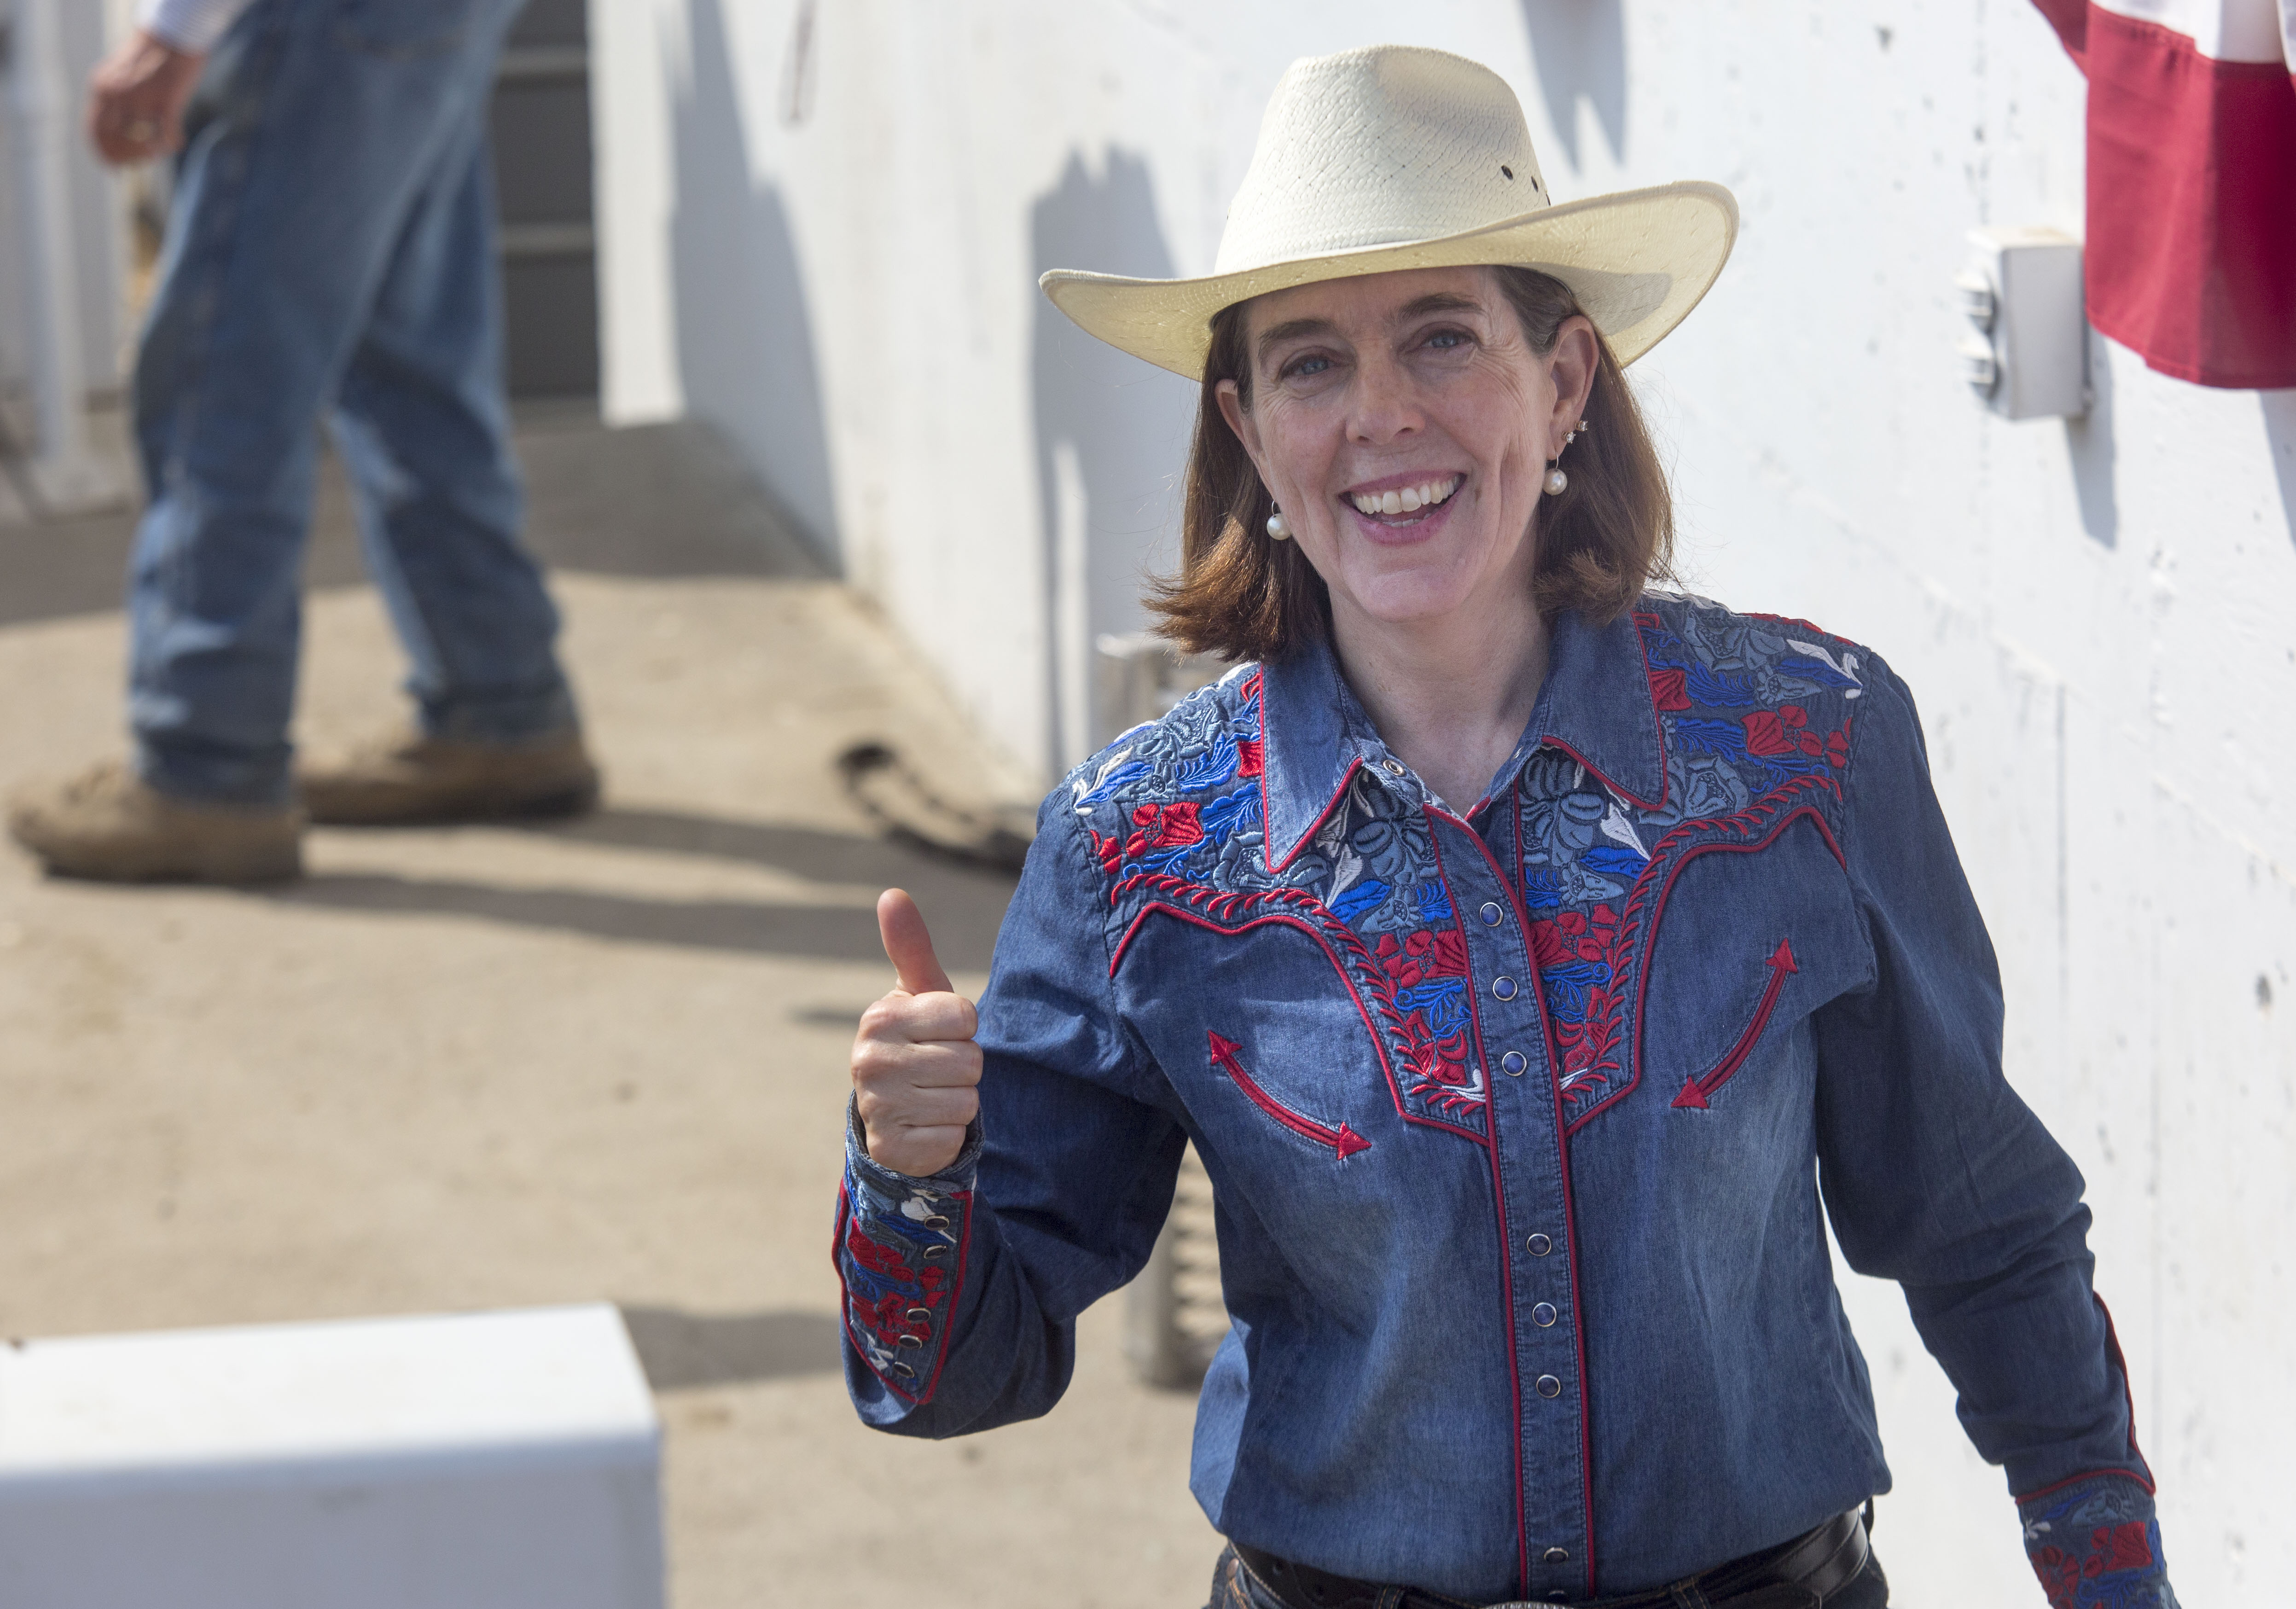 Oregon Governor Kate Brown attends the Pendleton Round-Up on September 15, 2017 in Pendleton, Oregon. (Photo by Natalie Behring/Getty Images)